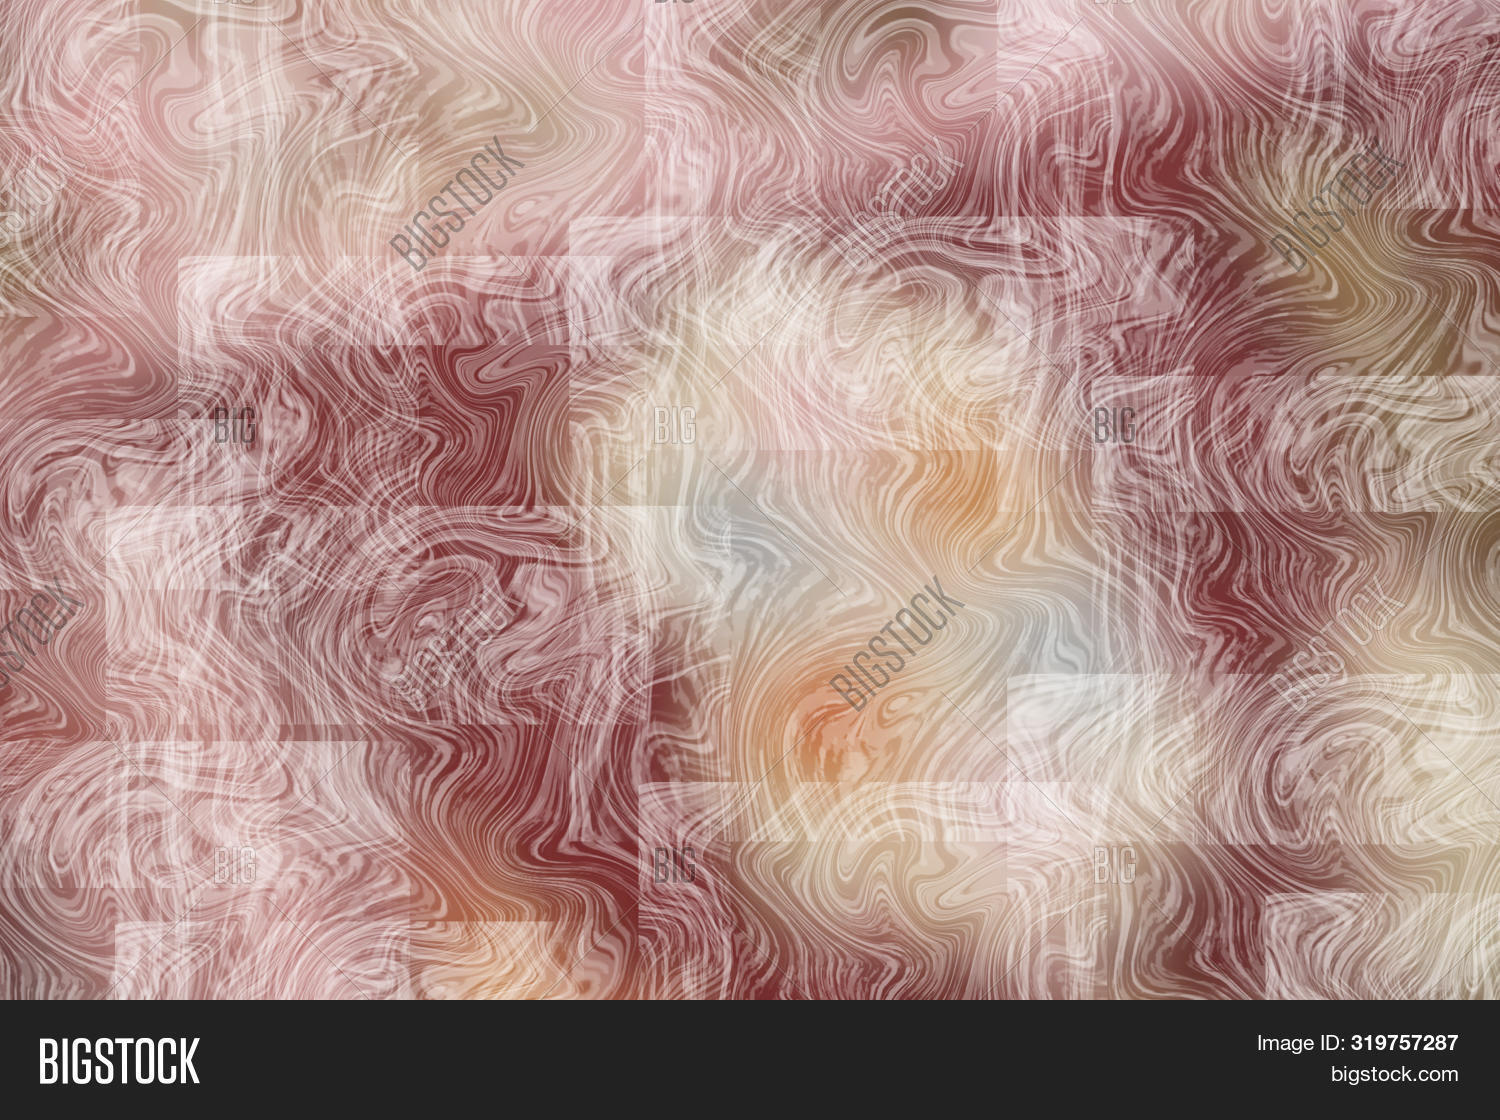 abstract,art,artistic,artwork,backdrop,background,beautiful,blur,blurred,bright,circle,color,colorful,cover,creative,decoration,decorative,design,digital,effect,elegant,element,geometric,glow,glowing,graphic,illustration,light,modern,ornament,paper,pattern,purple,red,repeat,seamless,shape,shine,shiny,soft,space,style,surface,texture,textured,tile,vintage,wallpaper,white